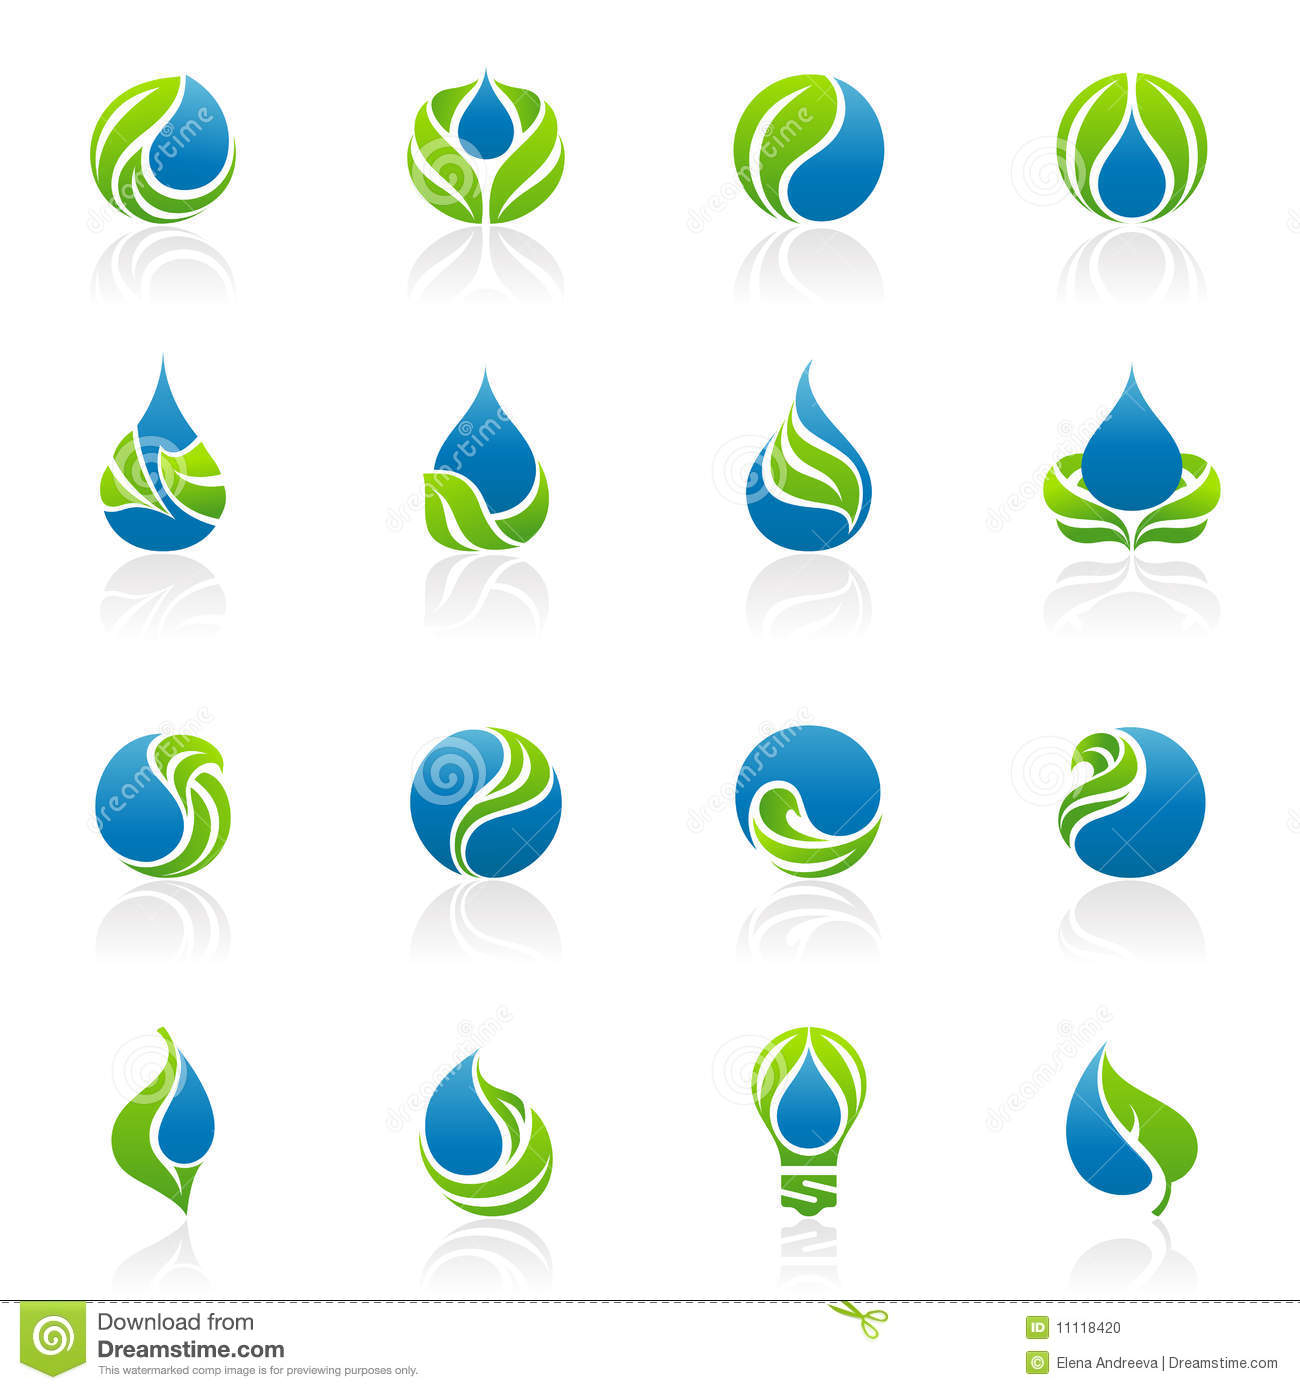 Drops and leaves. Vector logo template set.